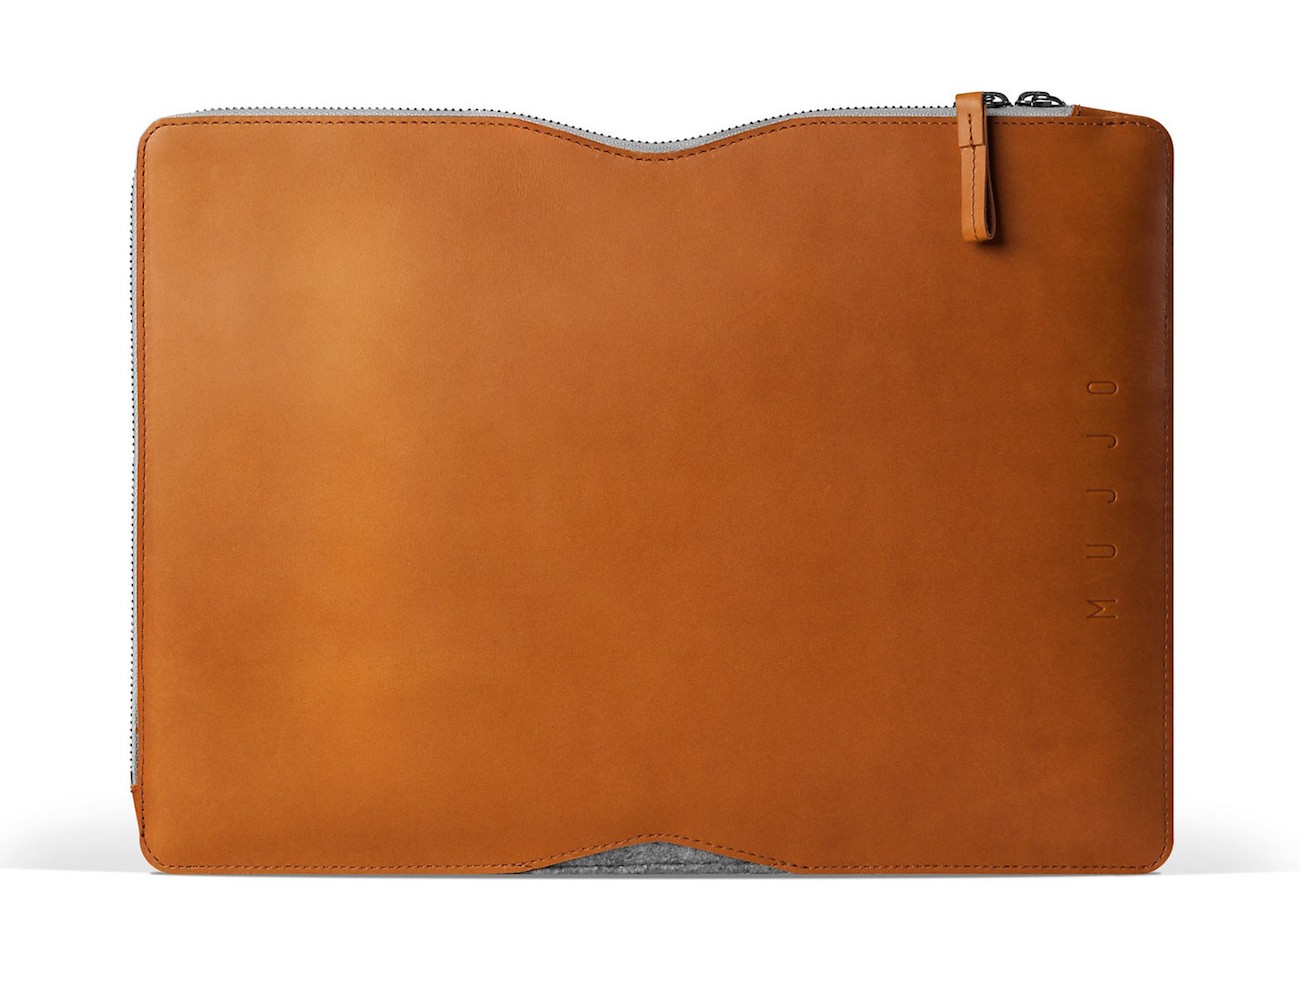 leather-macbook-folio-sleeve-by-mujjo-new-01